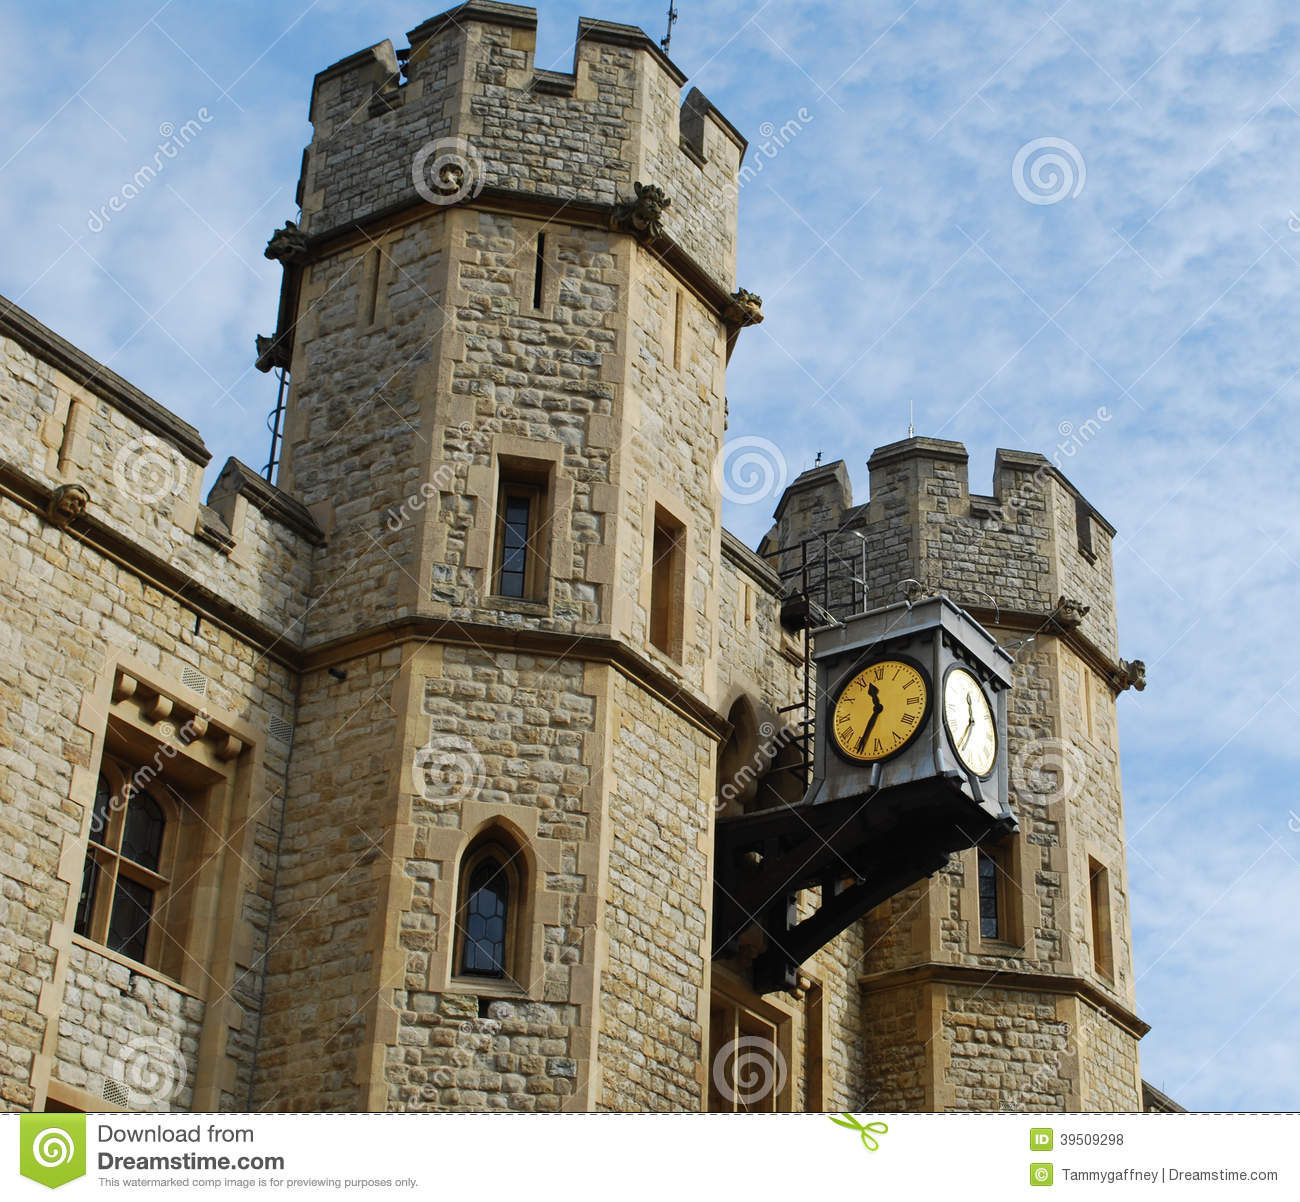 Detail of top of Jewel House at Tower of London